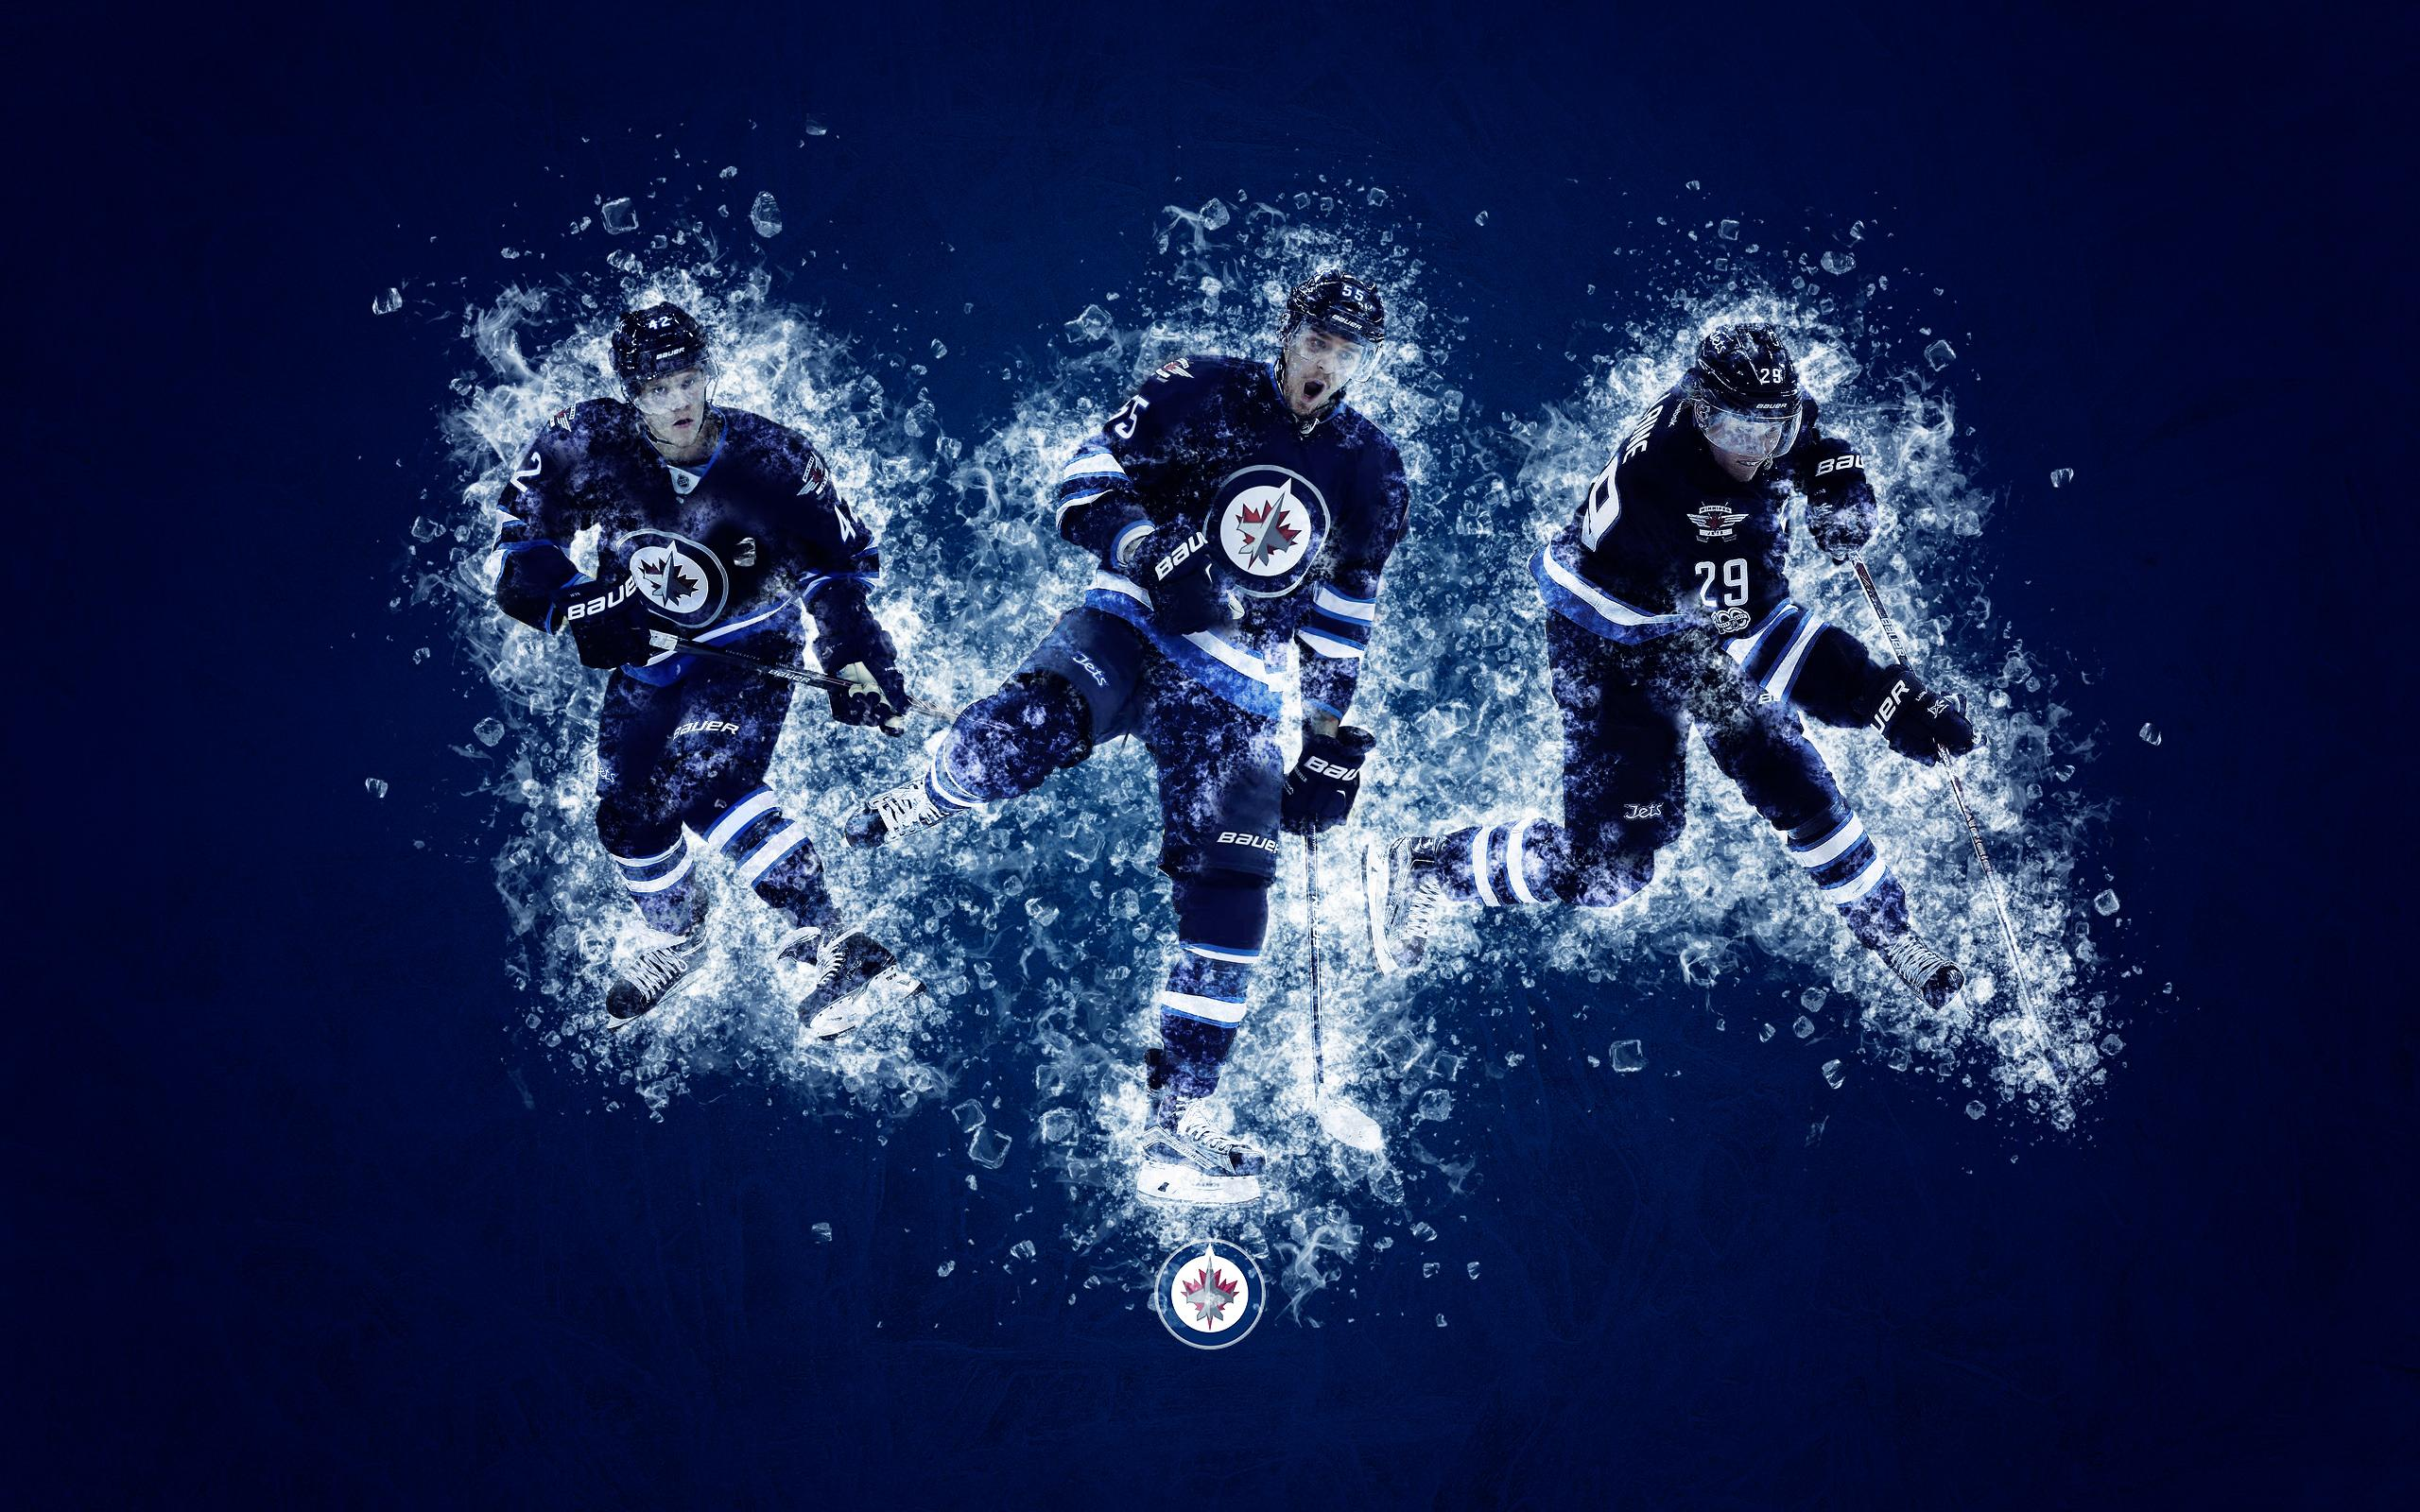 Winnipeg Jets Wallpaper 9   2560 X 1600 stmednet 2560x1600